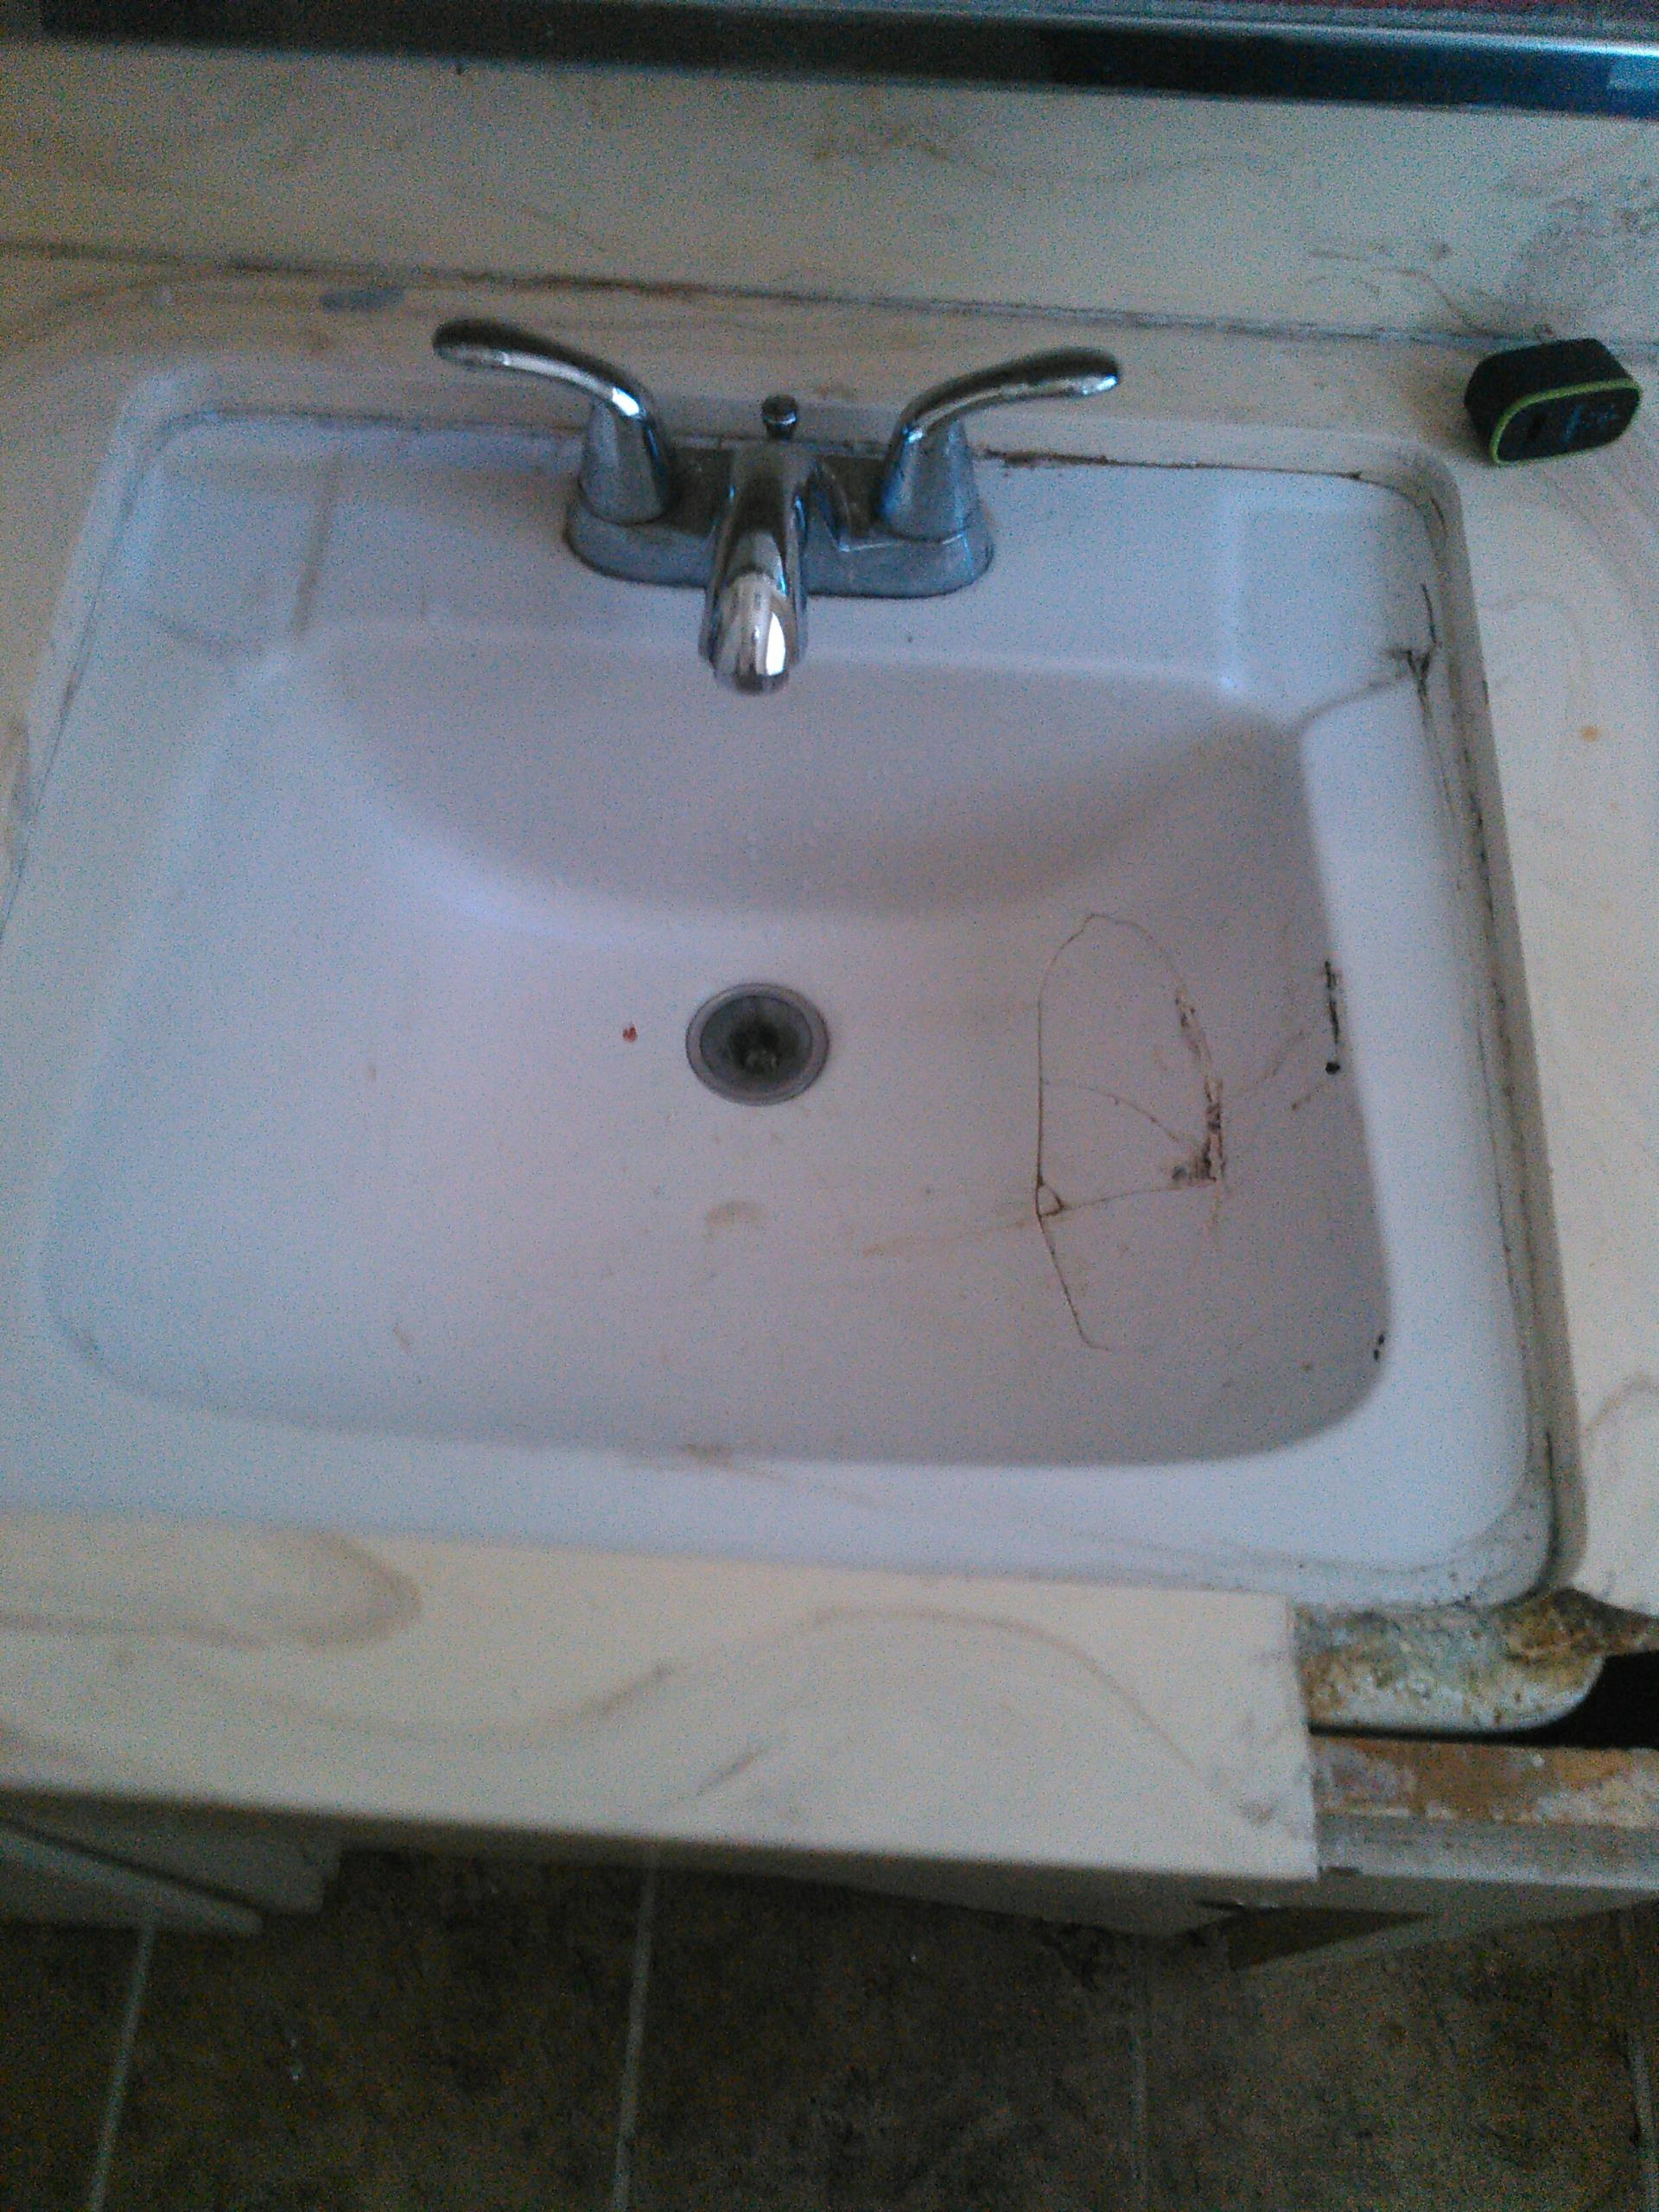 Claremont, CA - Lav sink stoppage